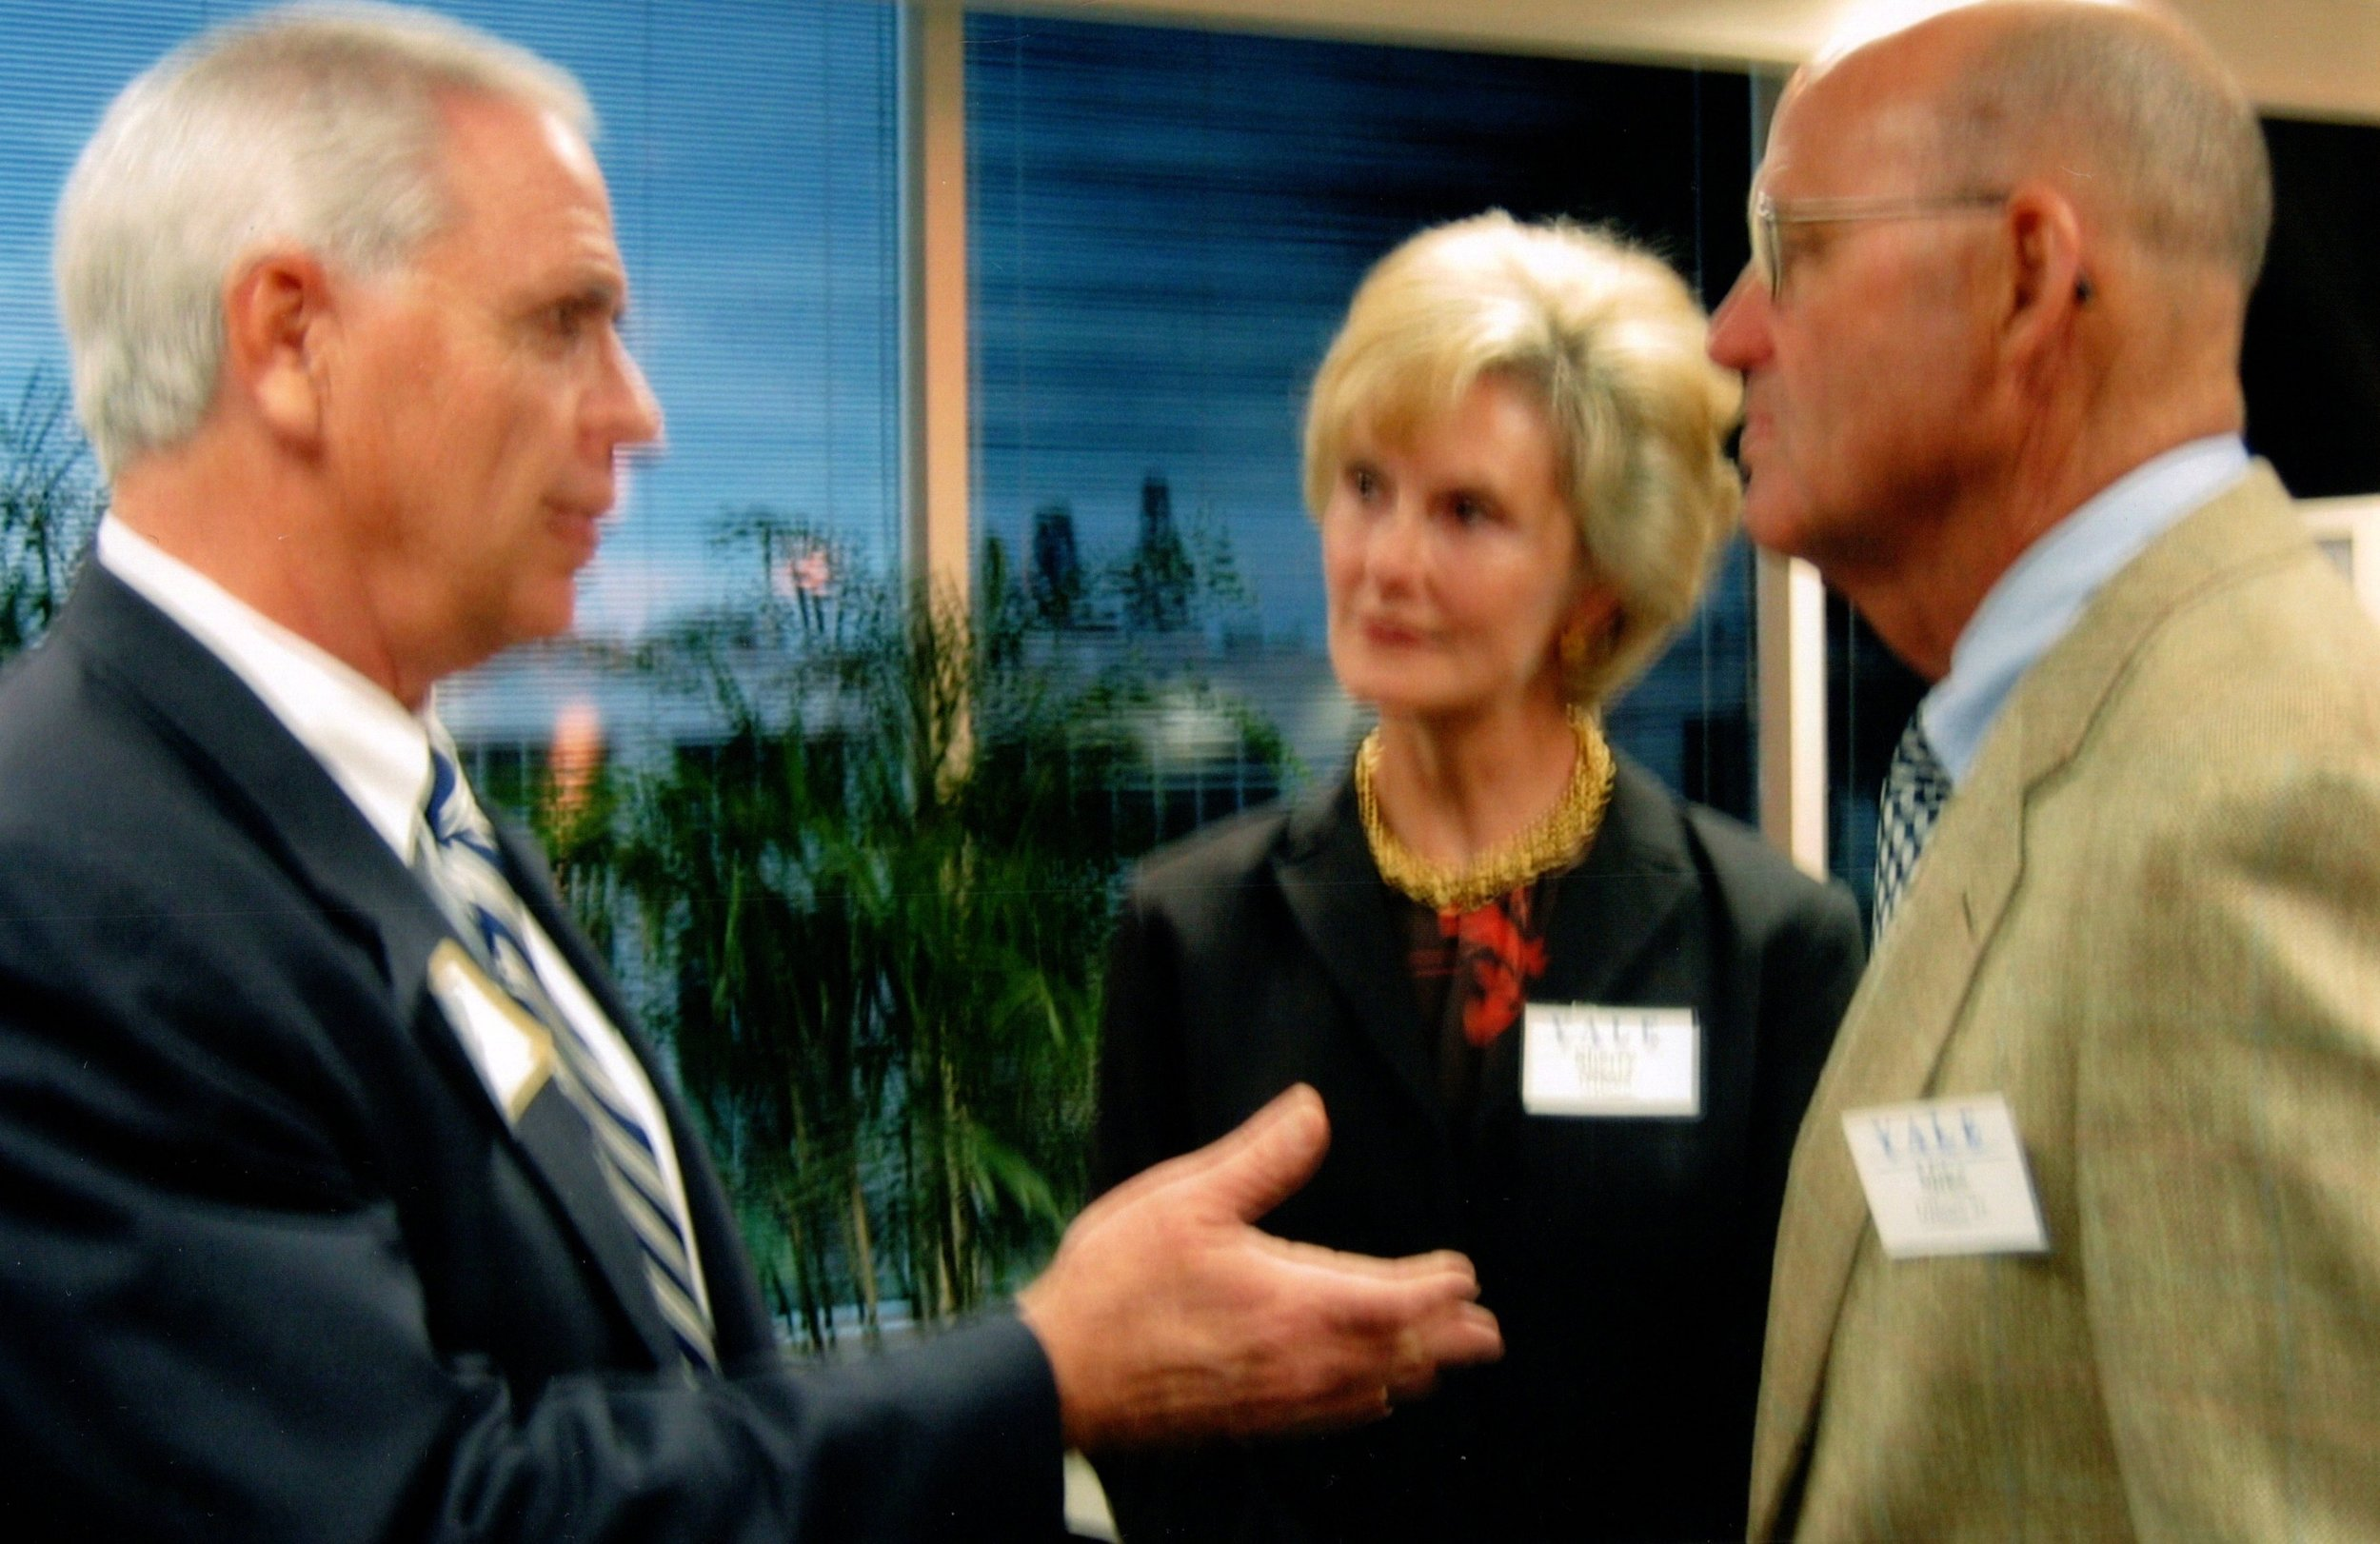 TOM BECKETT, SHERRY AND MICHAEL O'HEARN